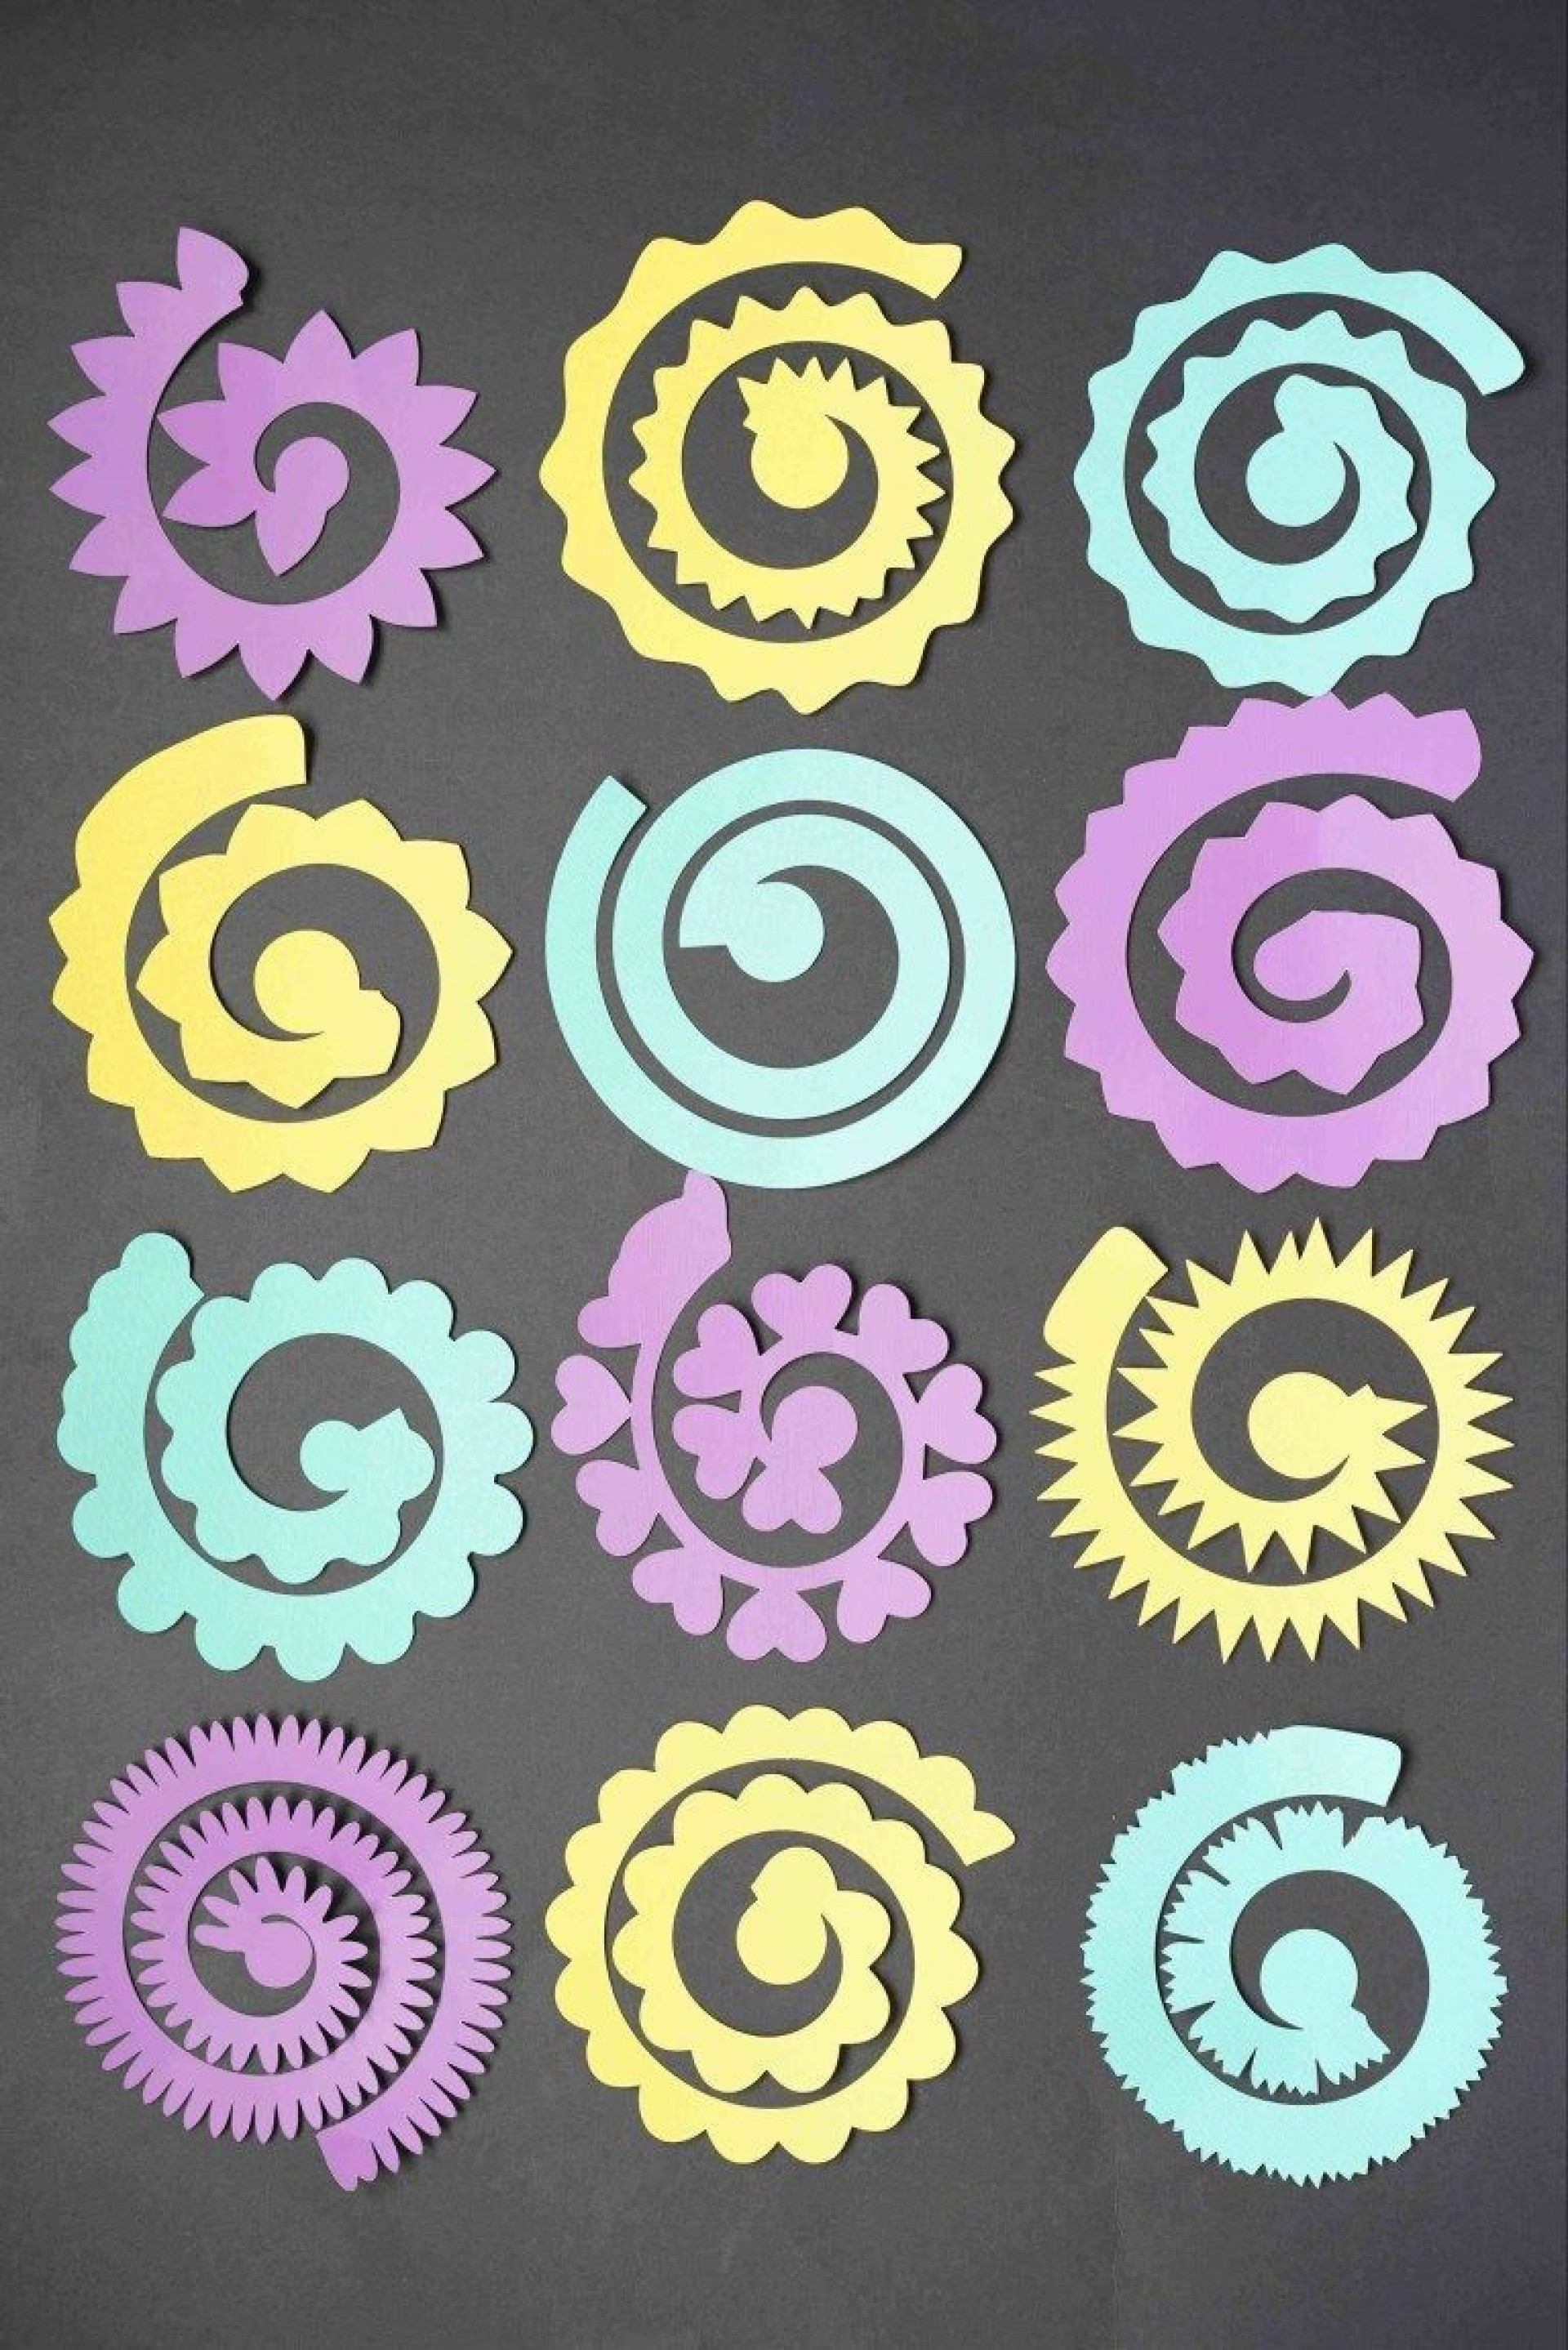 004 Awesome Free Rolled Paper Flower Template For Cricut Sample 1920